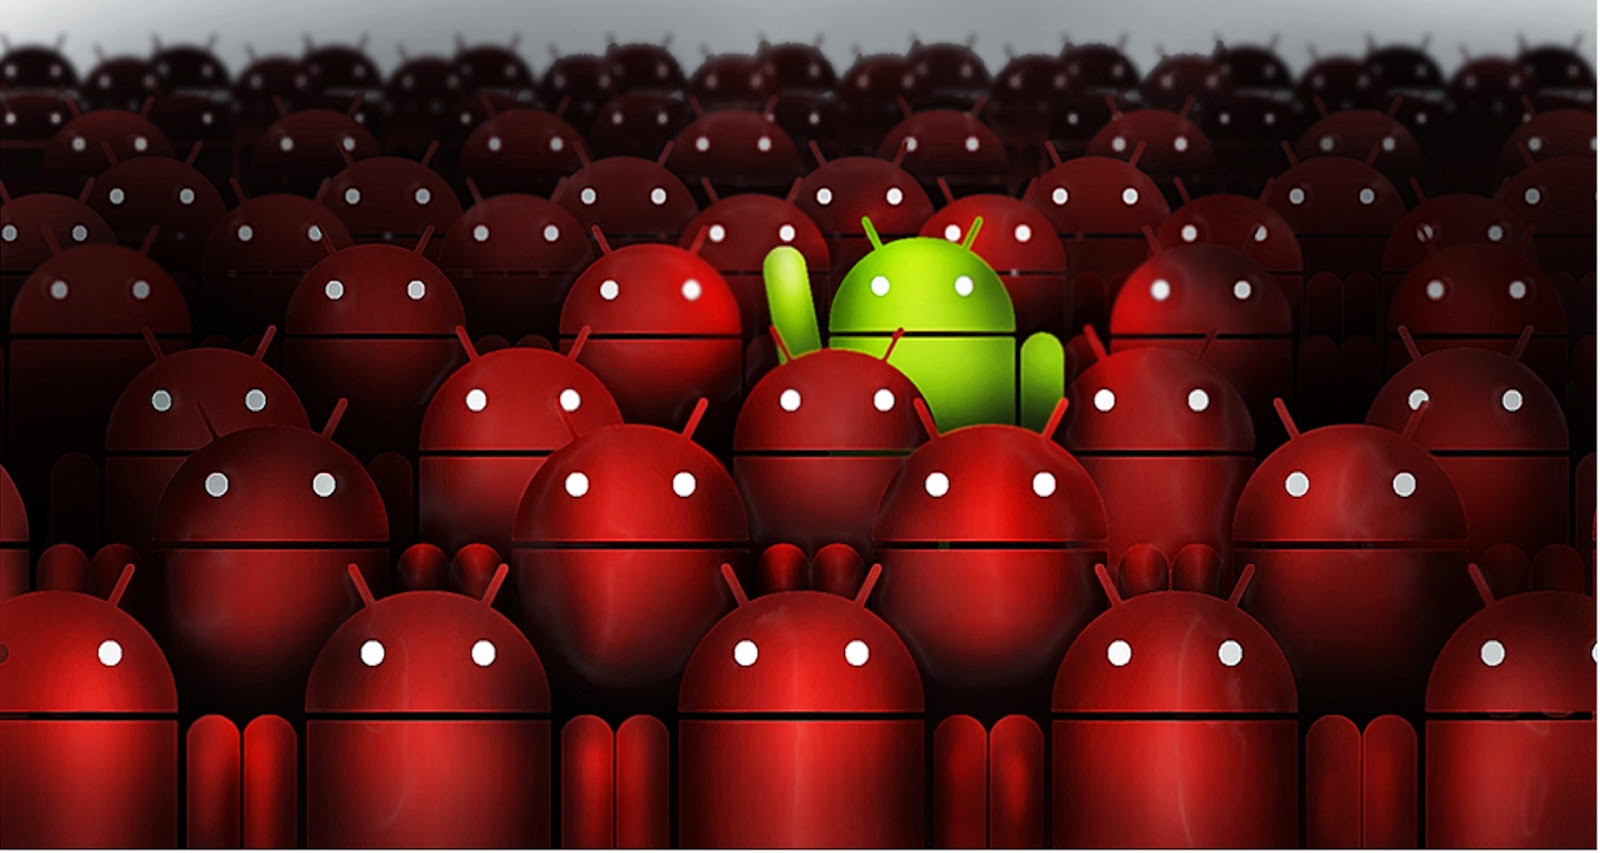 android vulnerable, Critical Vulnerability Put Billions of Android Device Under Threats,hacking android devices, android vulnerability, android ahcking apps,  apps for hackers, android hacking, information security experts, Google vulnerability, android lollipop vulnerability, security of android, billion of devices